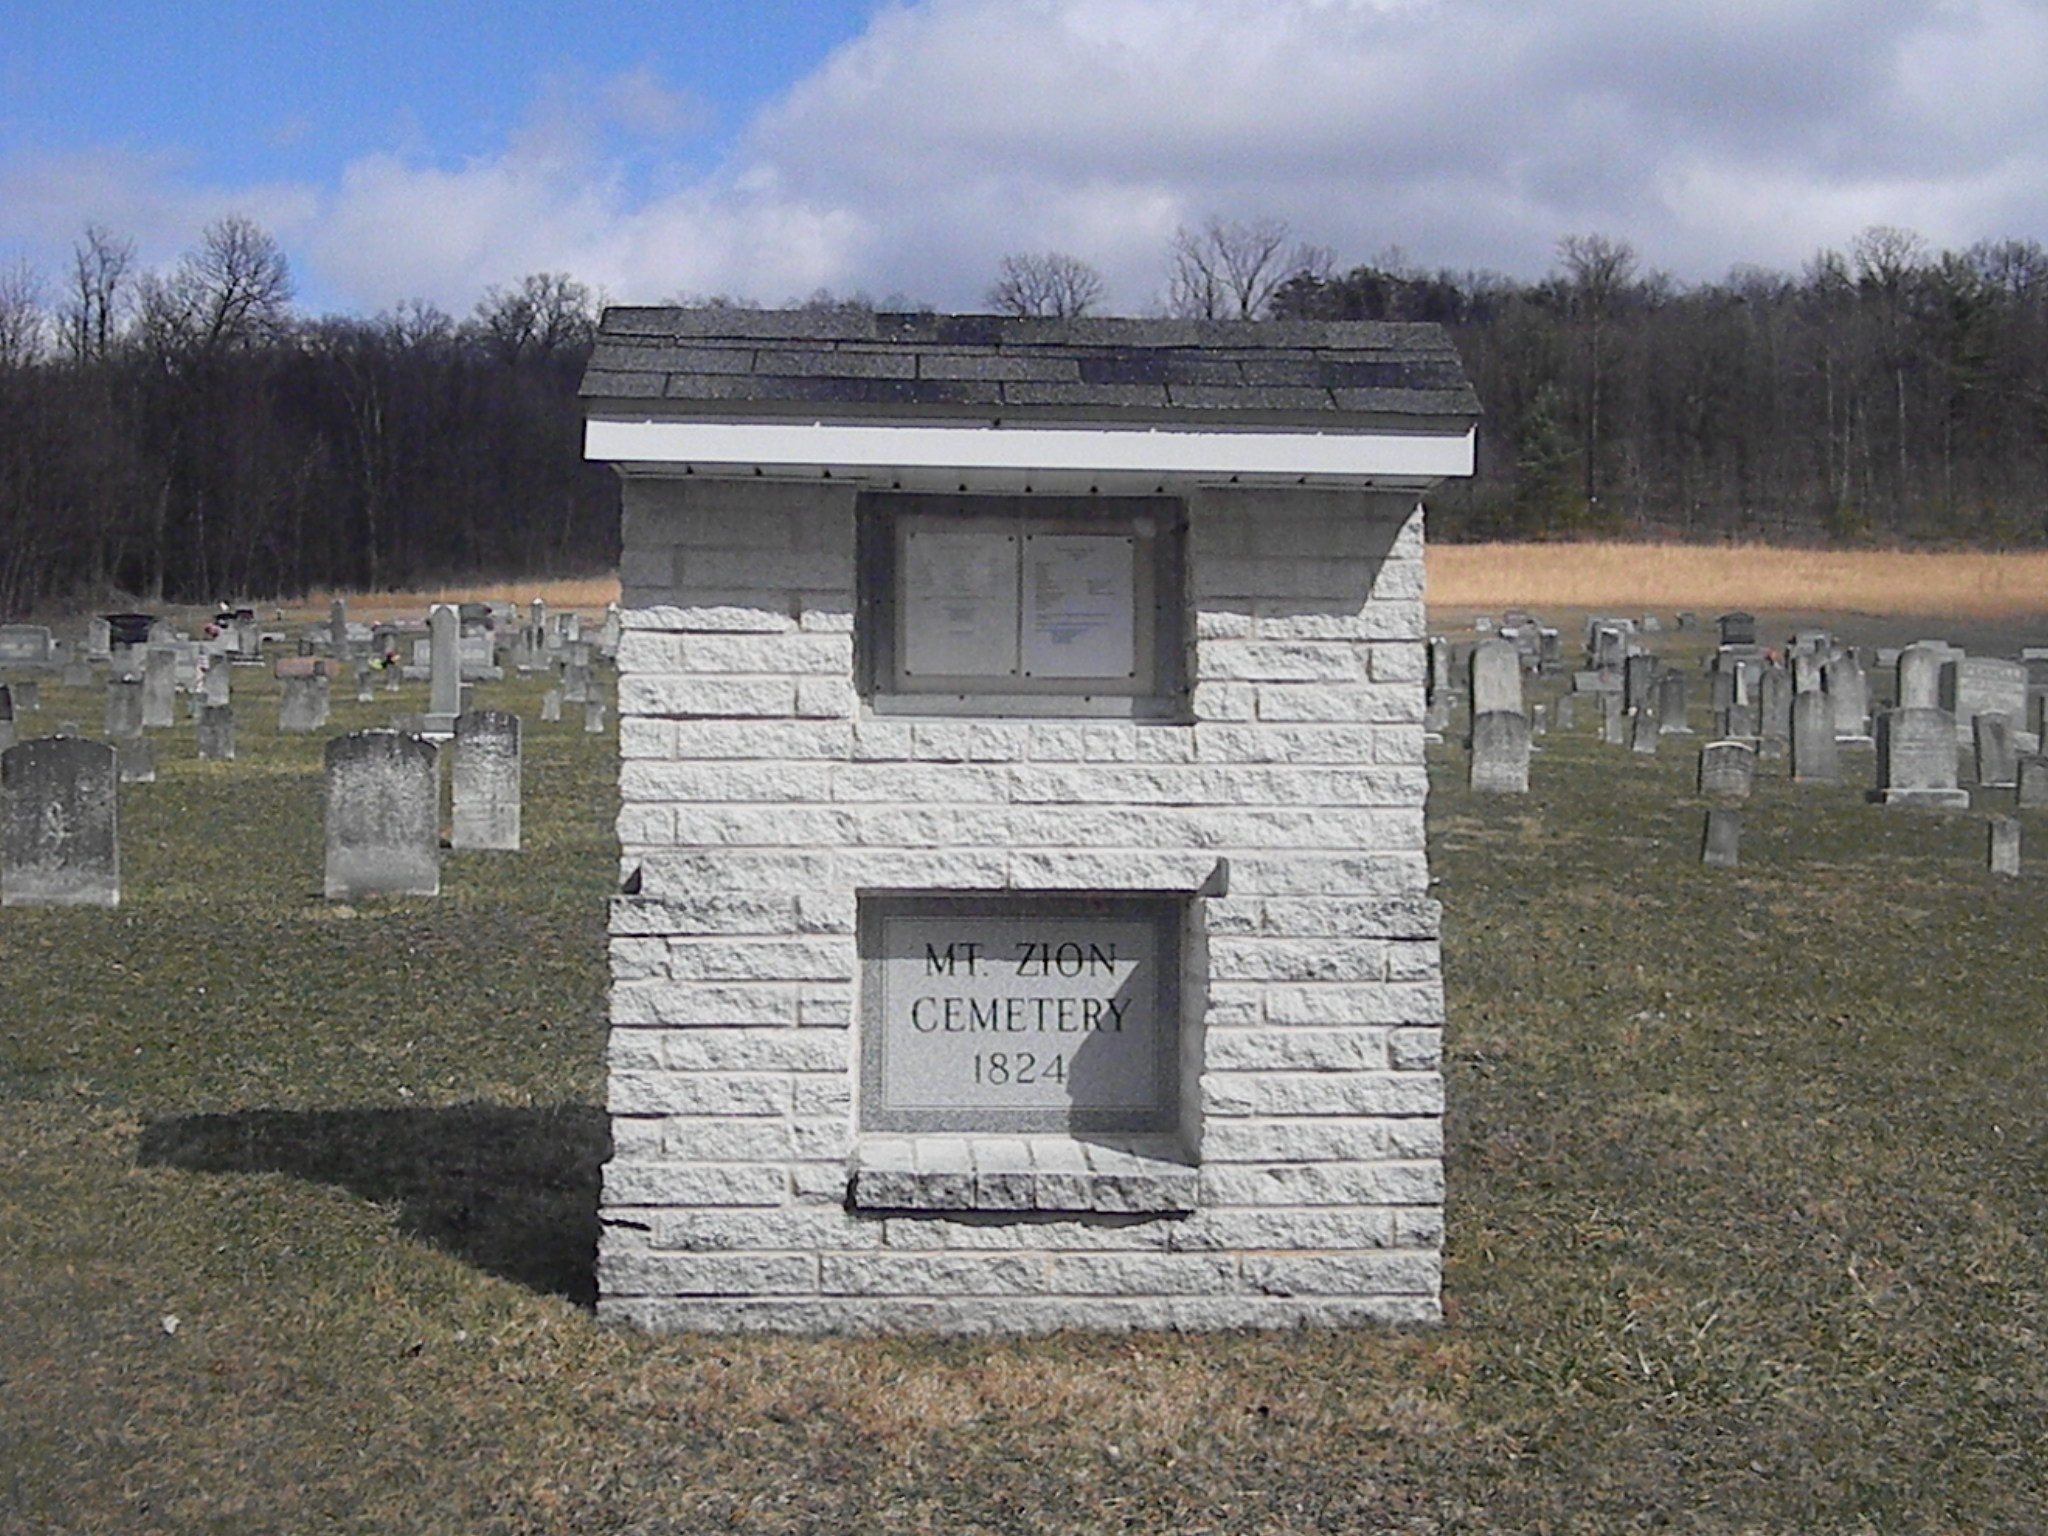 Mount Zion Church and Cemetery